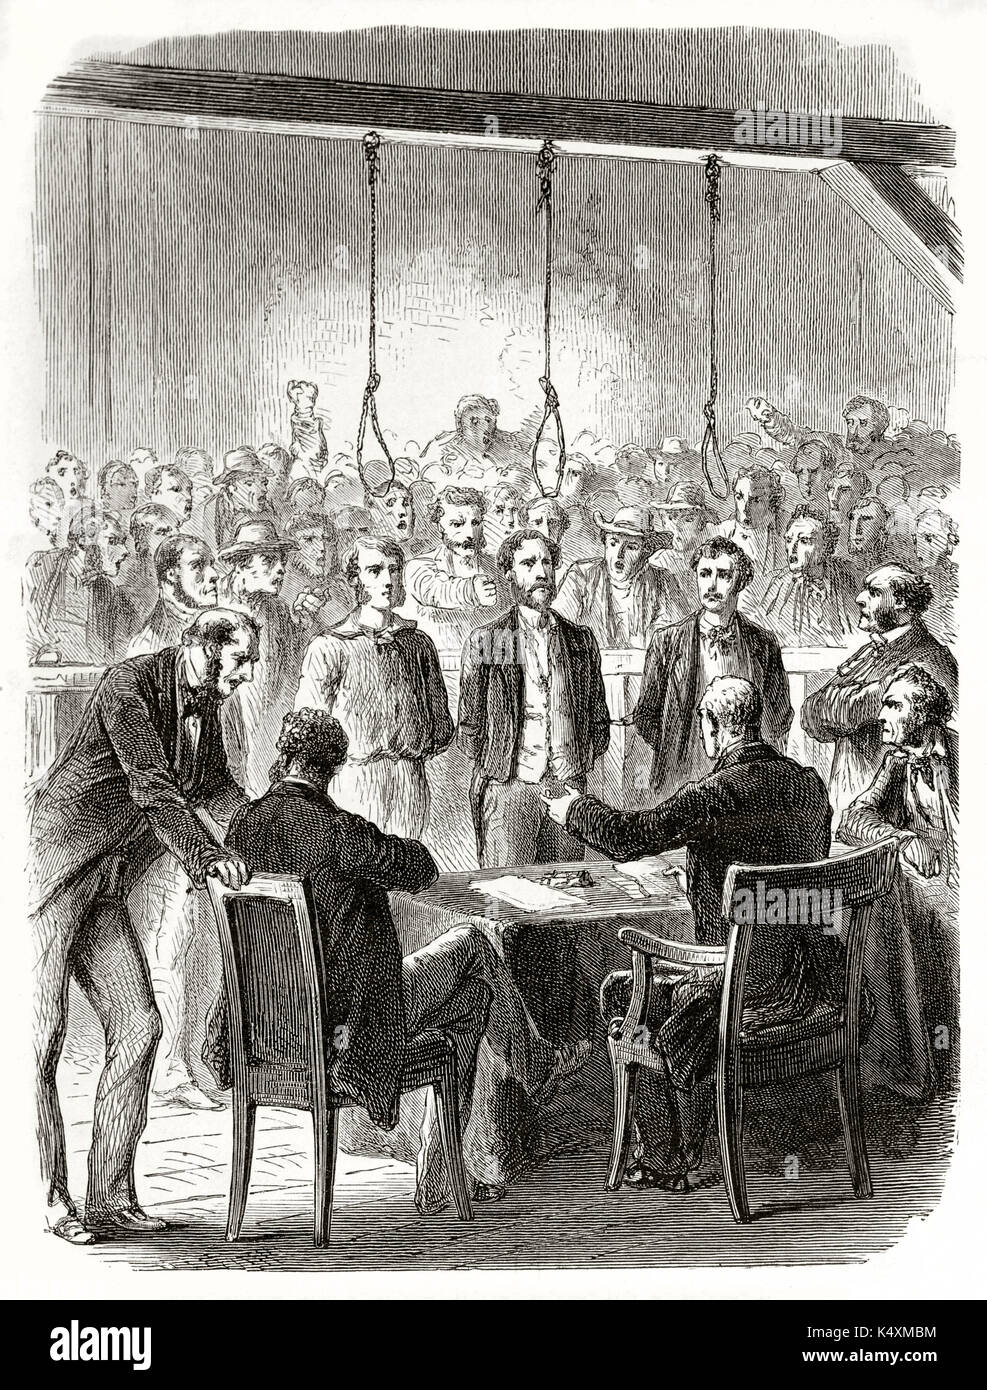 Ancient trial against three people in front of a screaming crowd and a gallows with hanging nooses. John Doe and son interrogations. By Janet-Lange and Carbonneau published on Le Tour du Monde 1862 - Stock Image